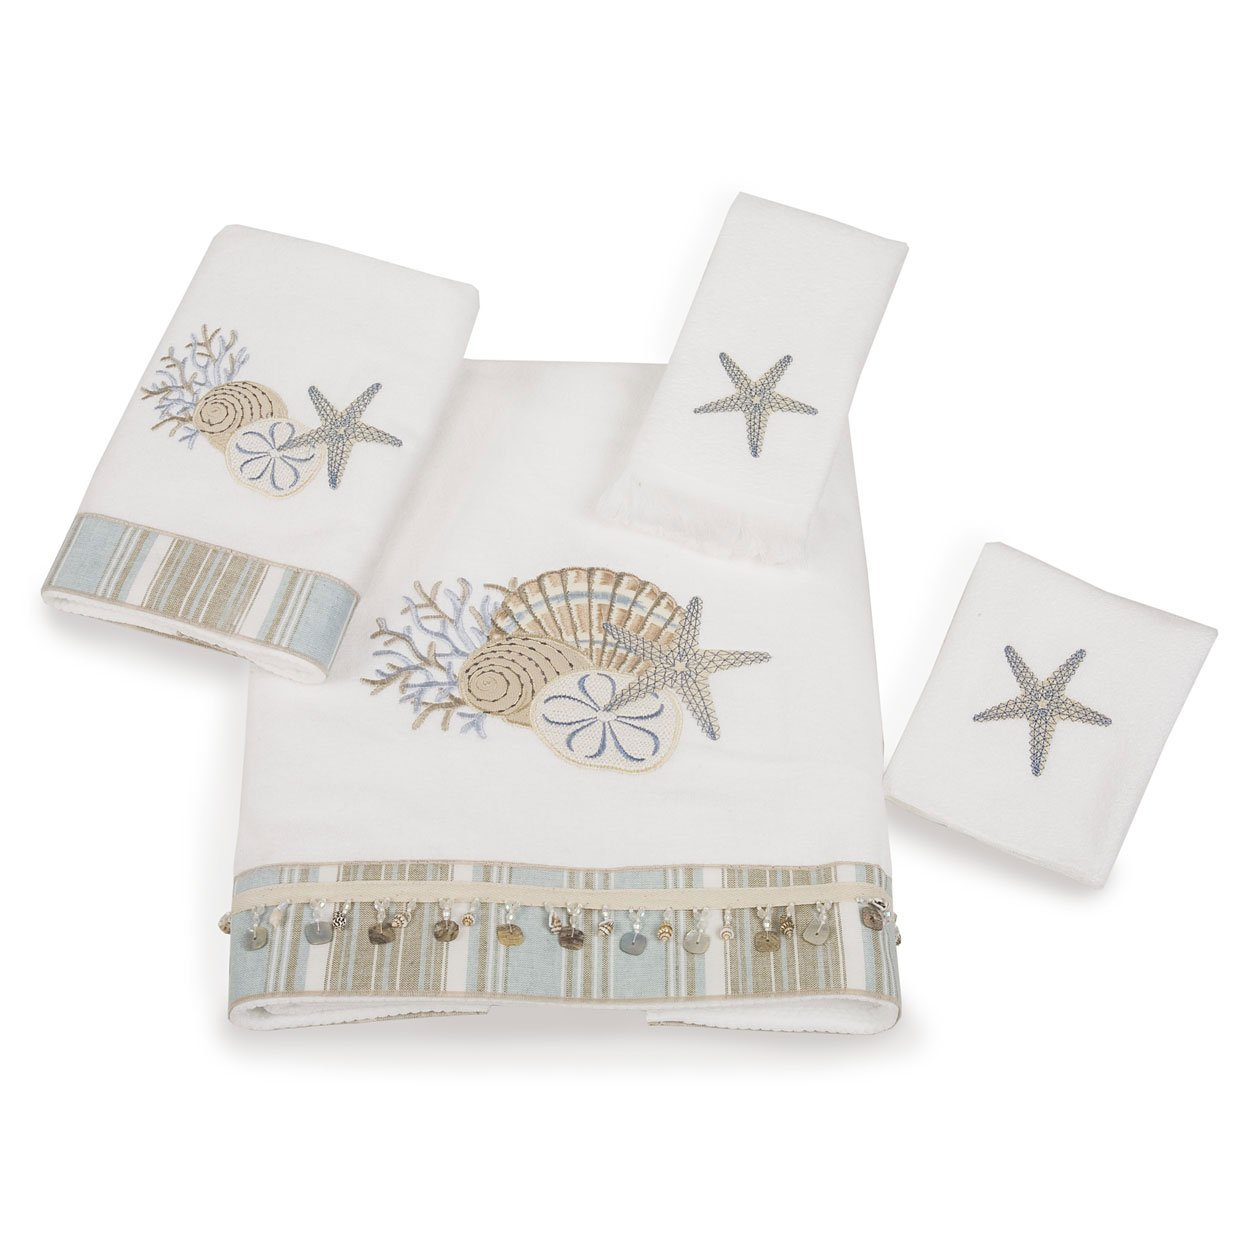 Avanti By the Sea 4-Piece Towel Set, White by Avanti Linens